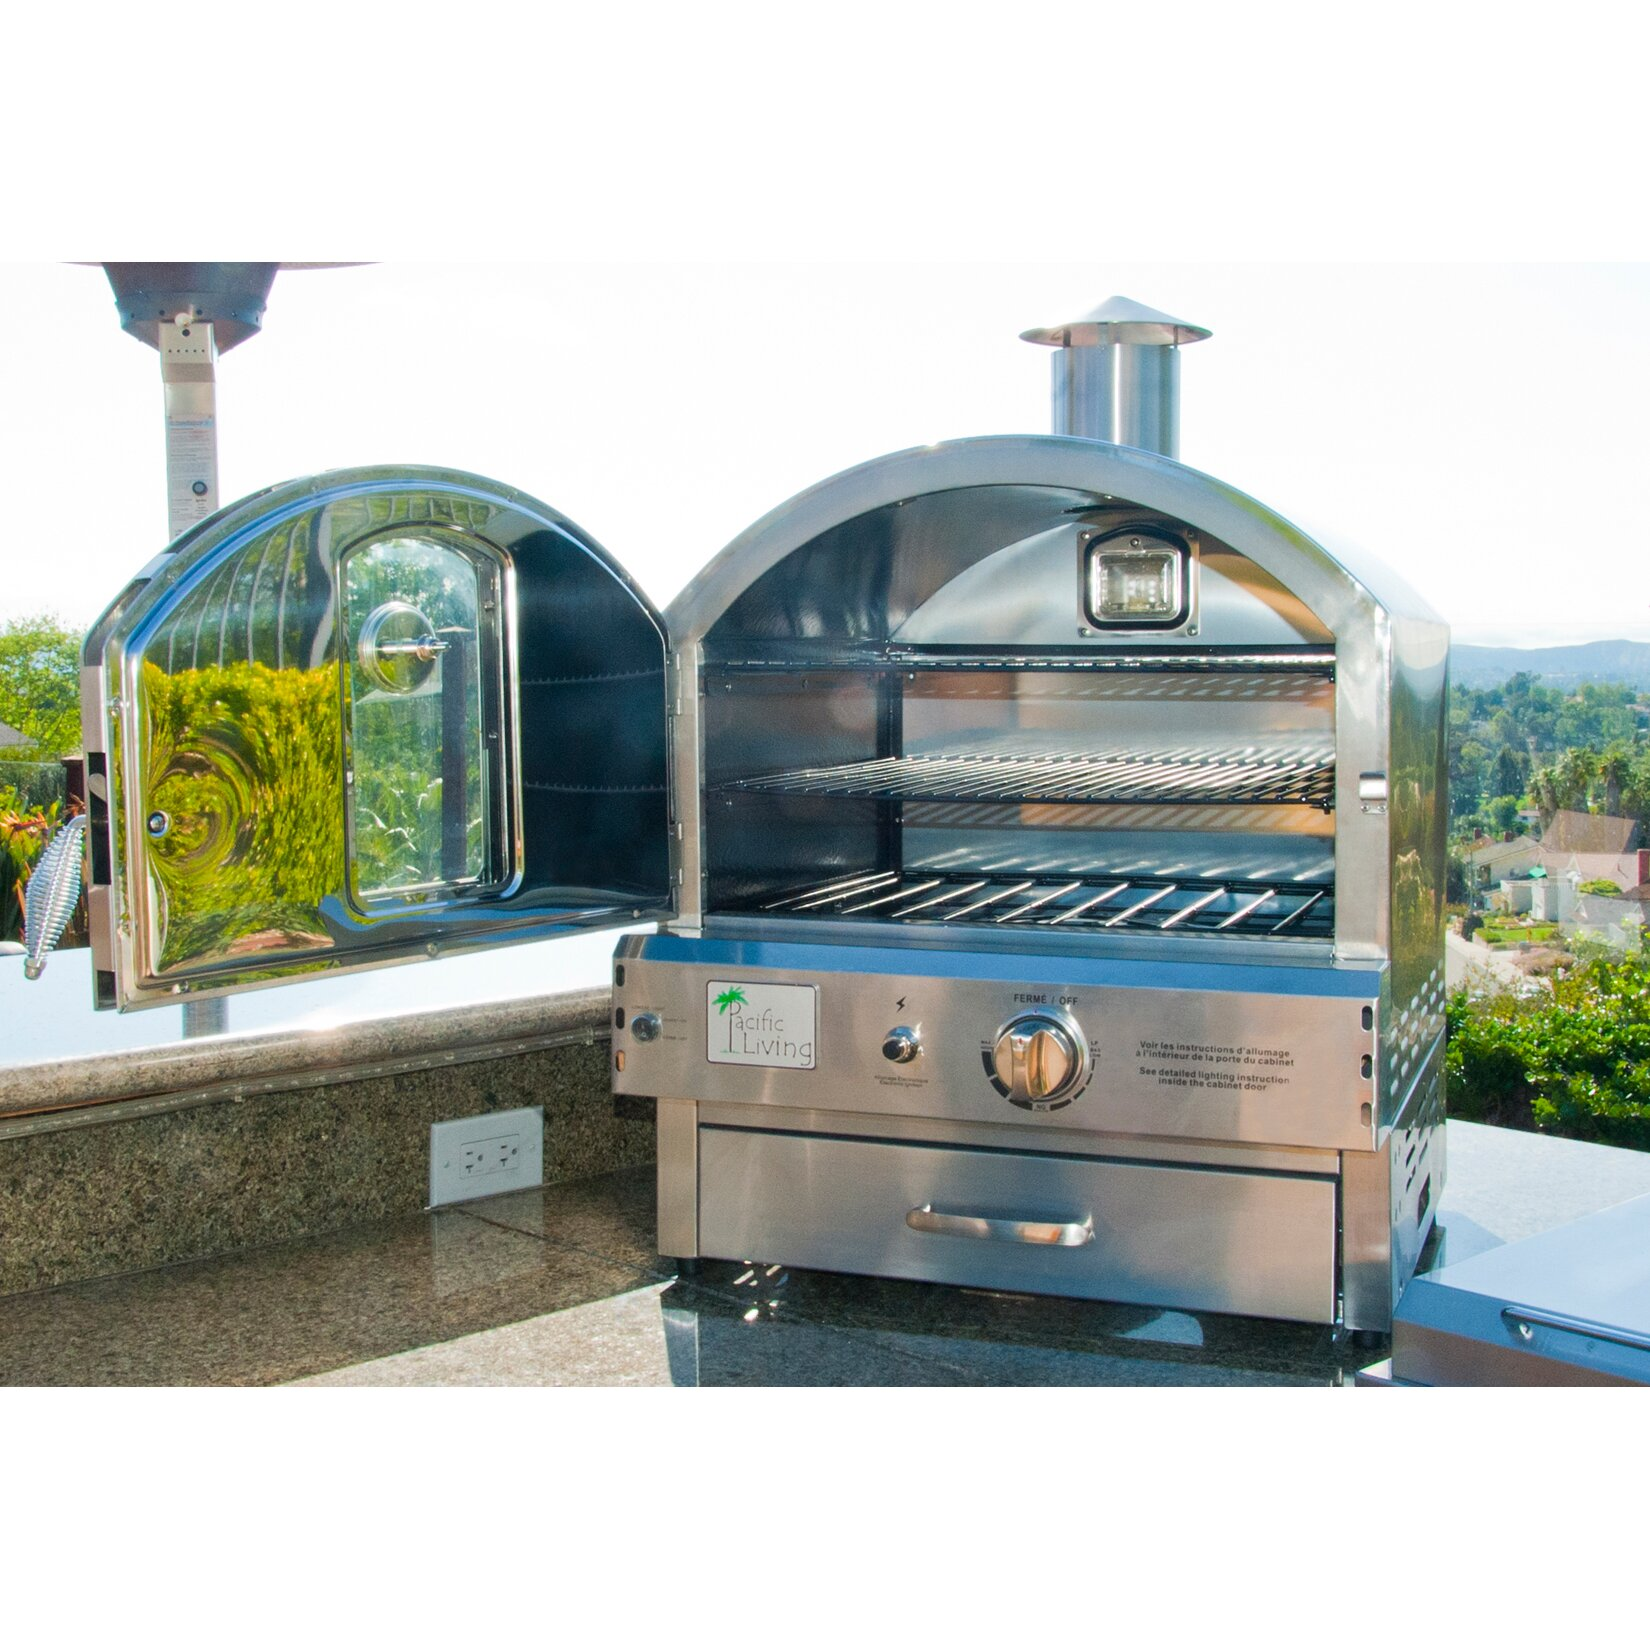 pacific living 22 8 outdoor pizza oven gas grill reviews wayfair. Black Bedroom Furniture Sets. Home Design Ideas